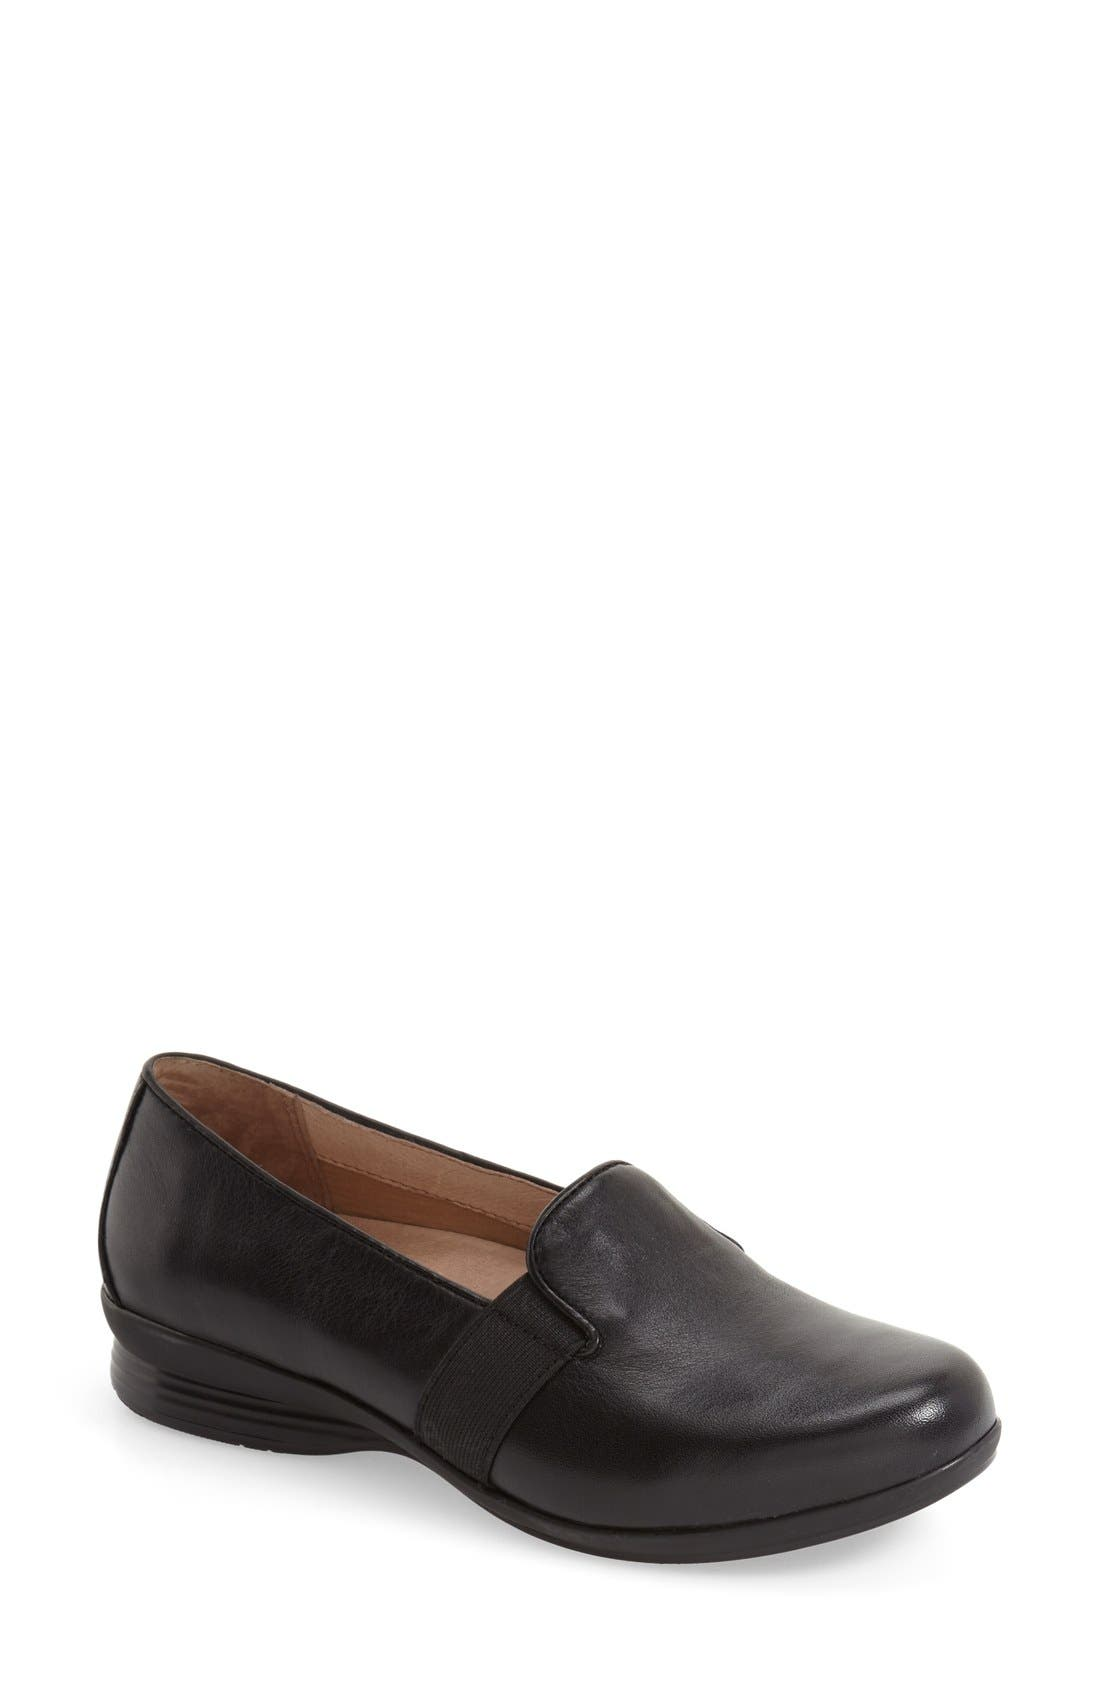 Dansko 'Addy' Loafer (Women)